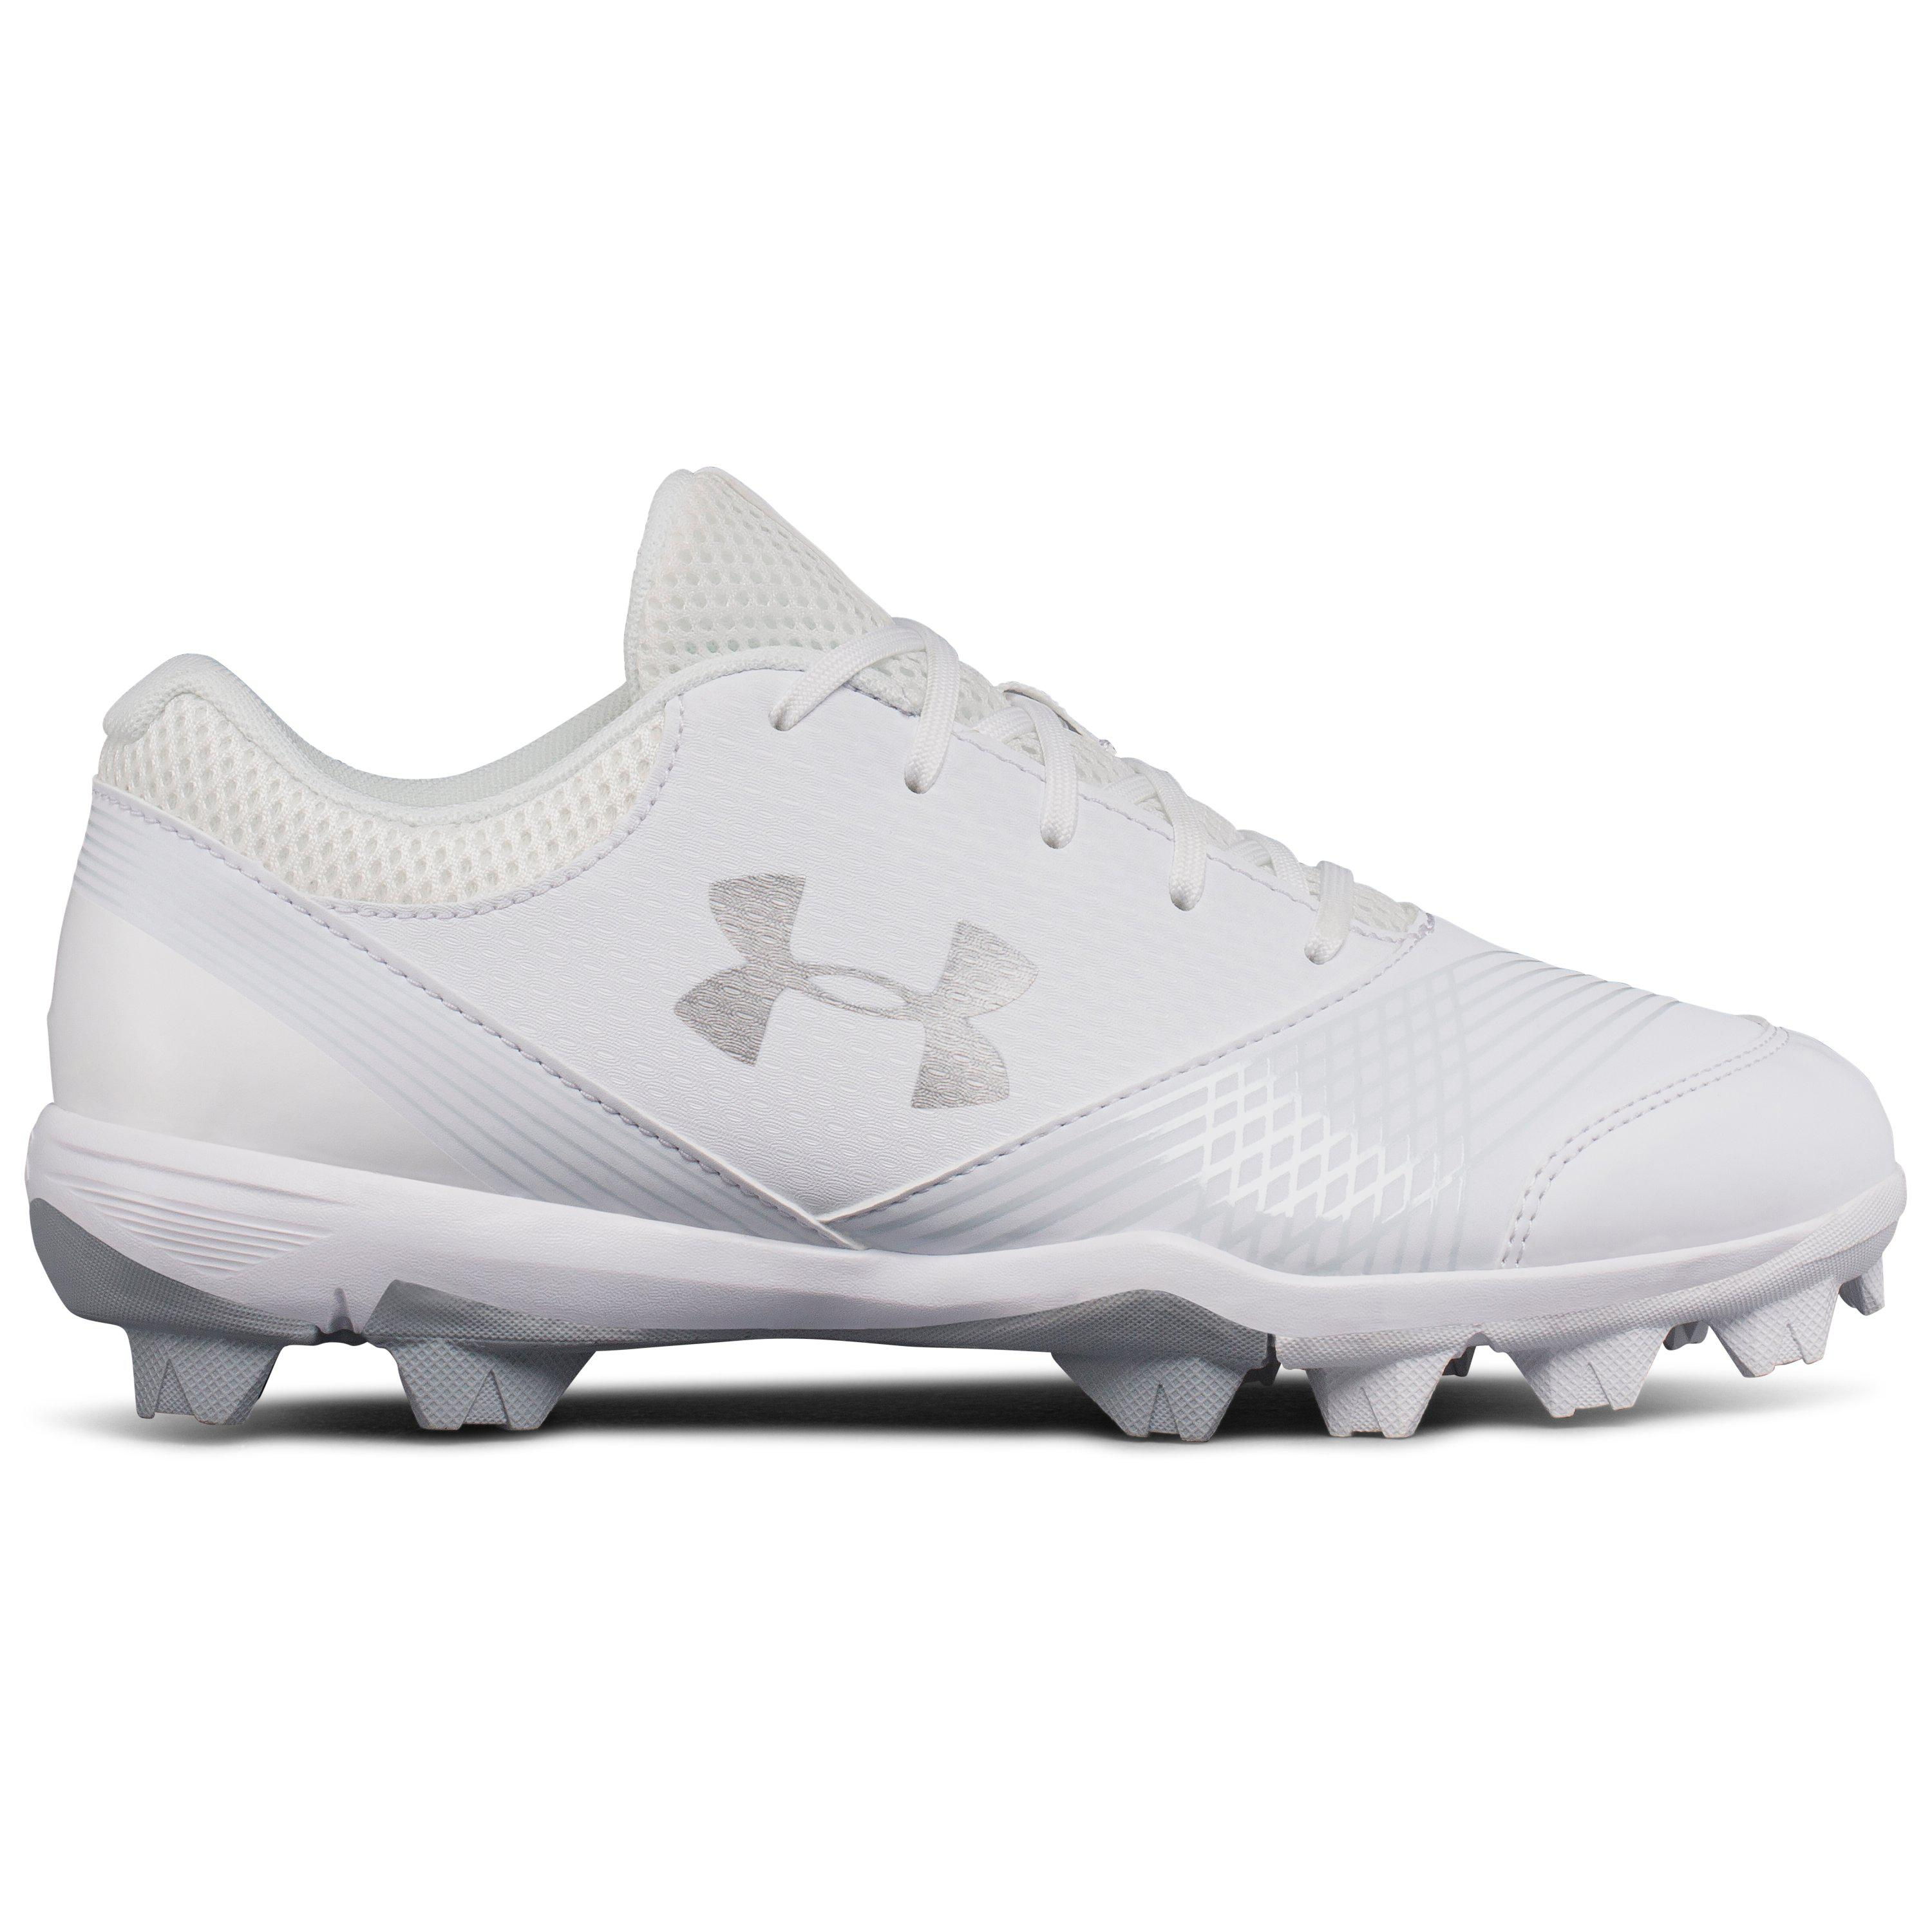 76f48f7e2f0a Under Armour Women's Ua Glyde Rubber Molded Softball Cleats in White ...